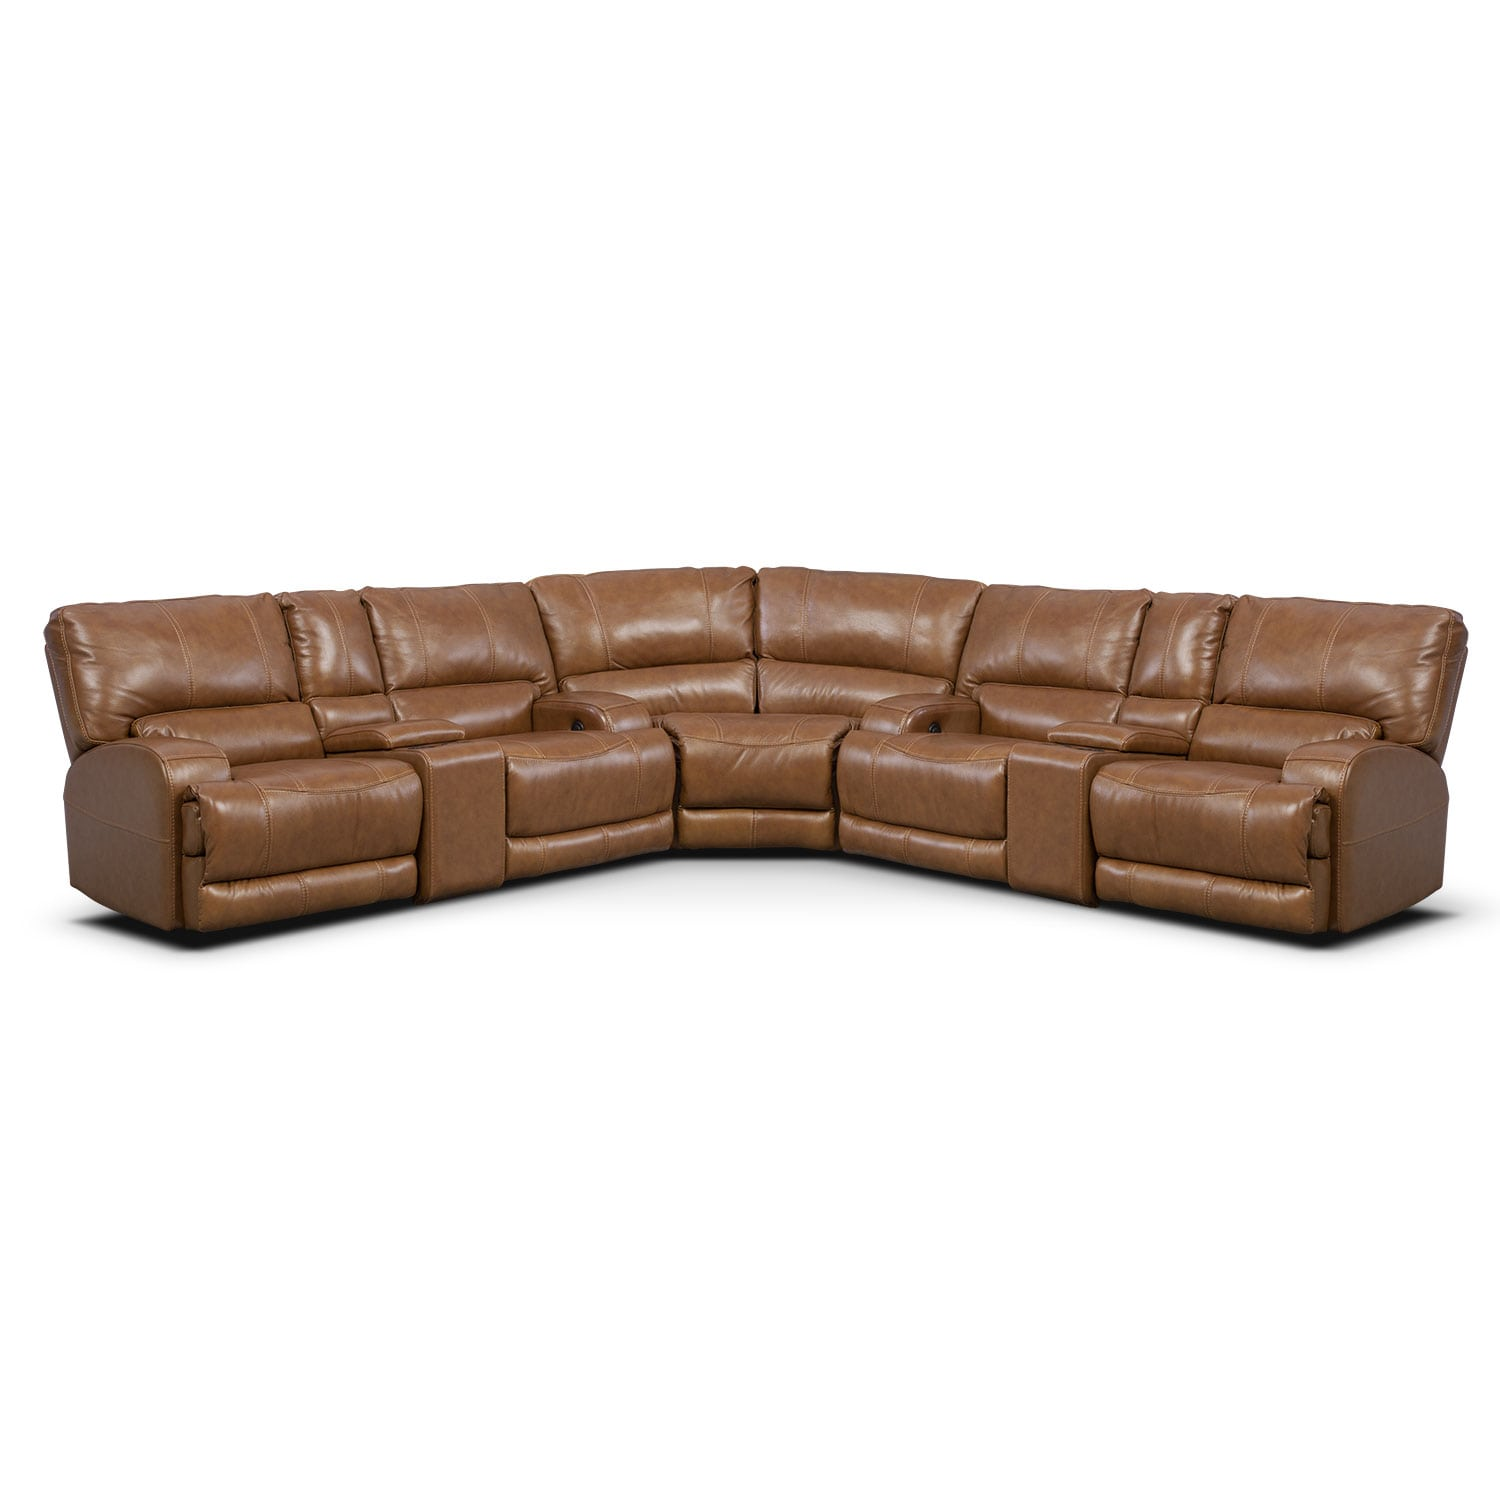 Living Room Furniture - Barton Camel 3 Pc. Power Reclining Sectional with Consoles